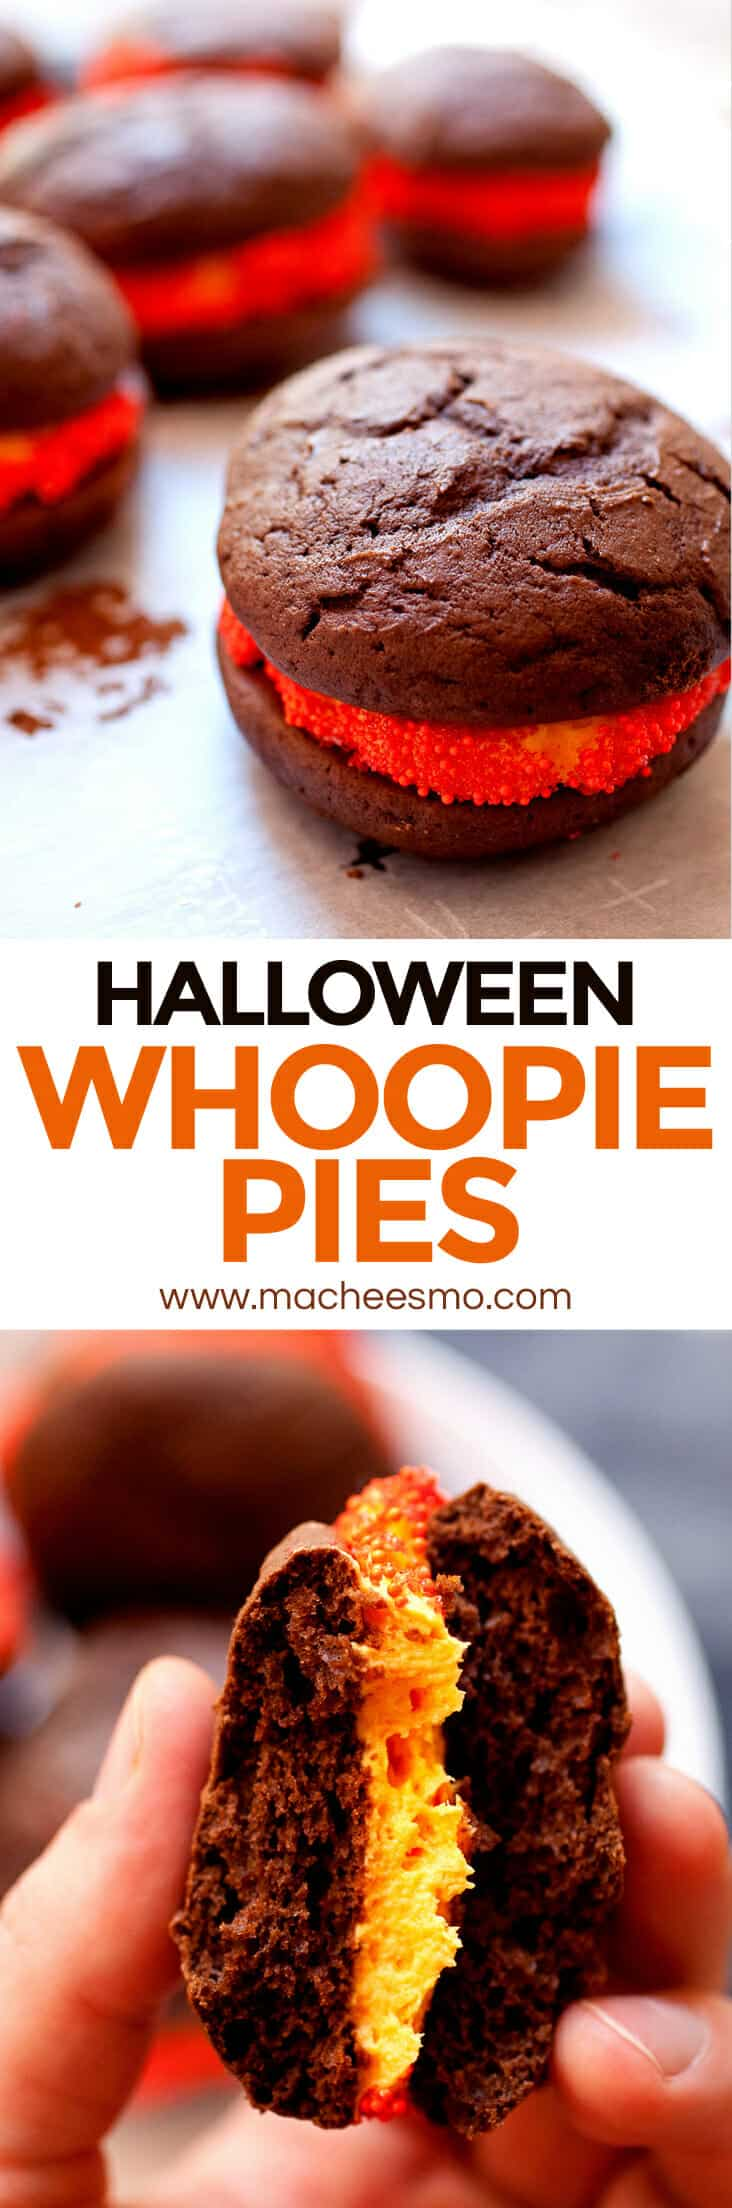 Halloween Whoopie Pies: Homemade chocolate and marshmallow whoopie pies! Perfect for a Halloween party! Easier to make than you might think, really fun, and scary delicious! | macheesmo.com